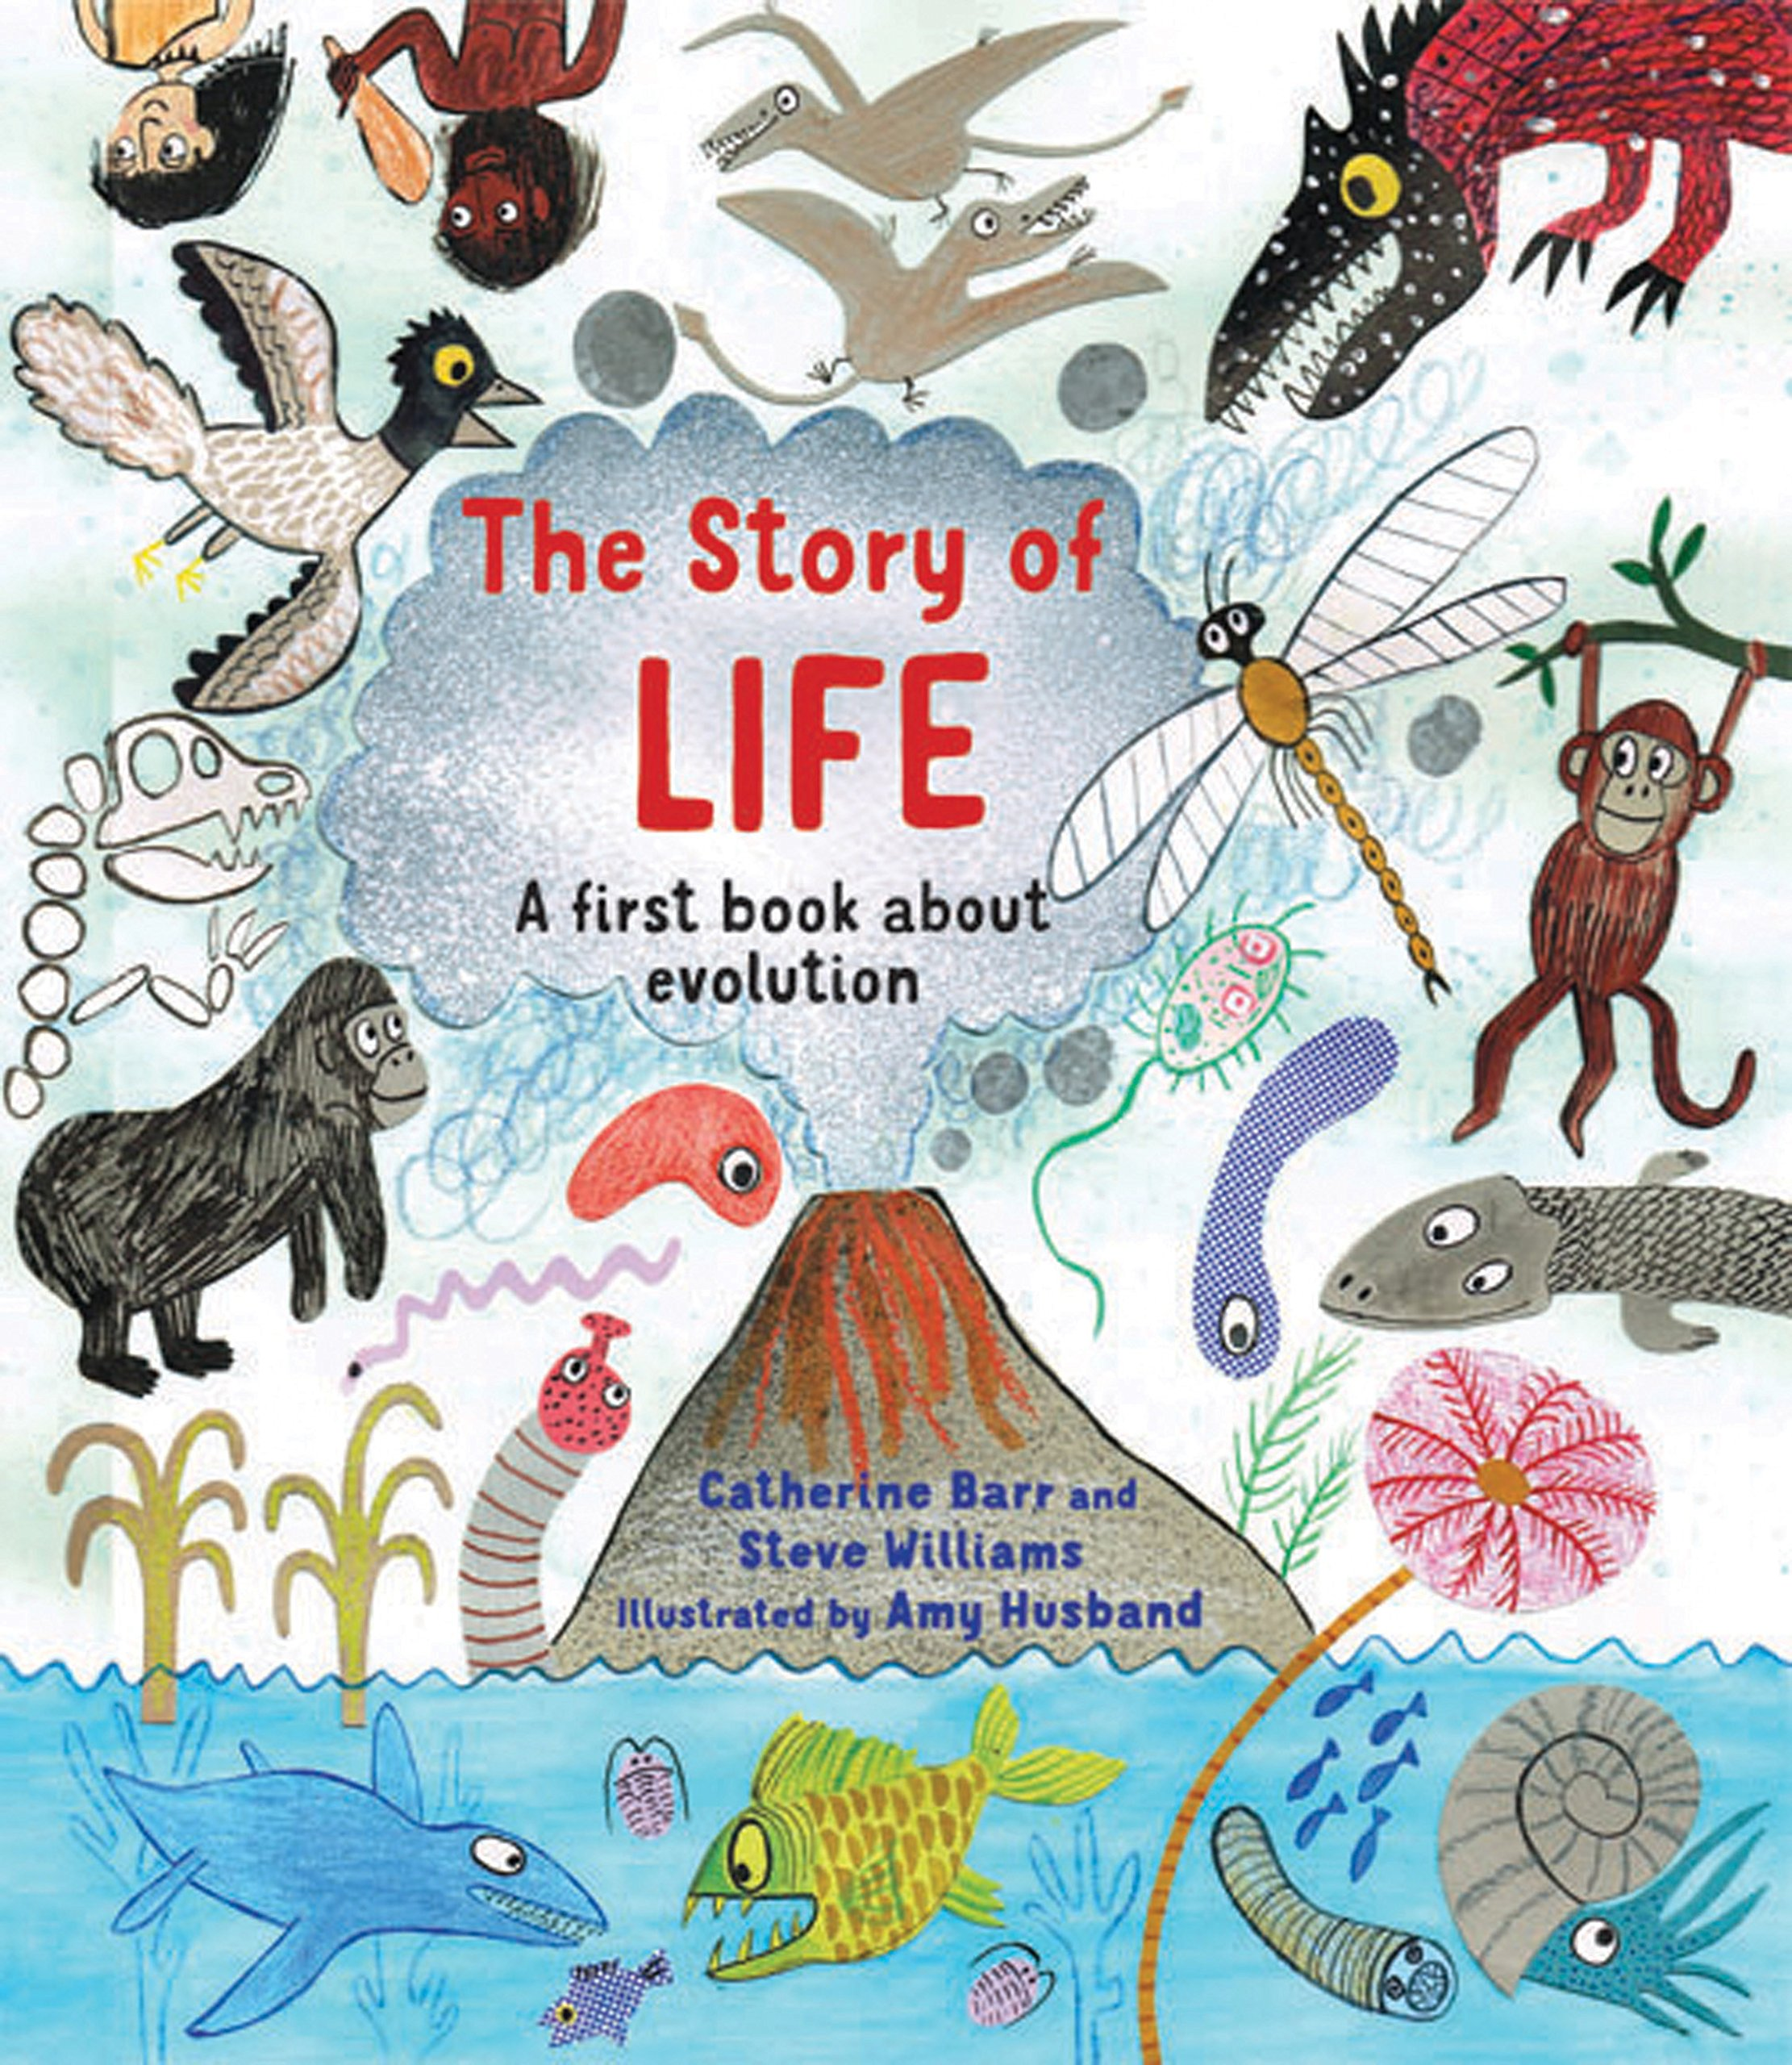 The Story Of Life: A First Book About Evolution: Amazon: Catherine  Barr, Steve Williams, Amy Husband: 9781847804853: Books